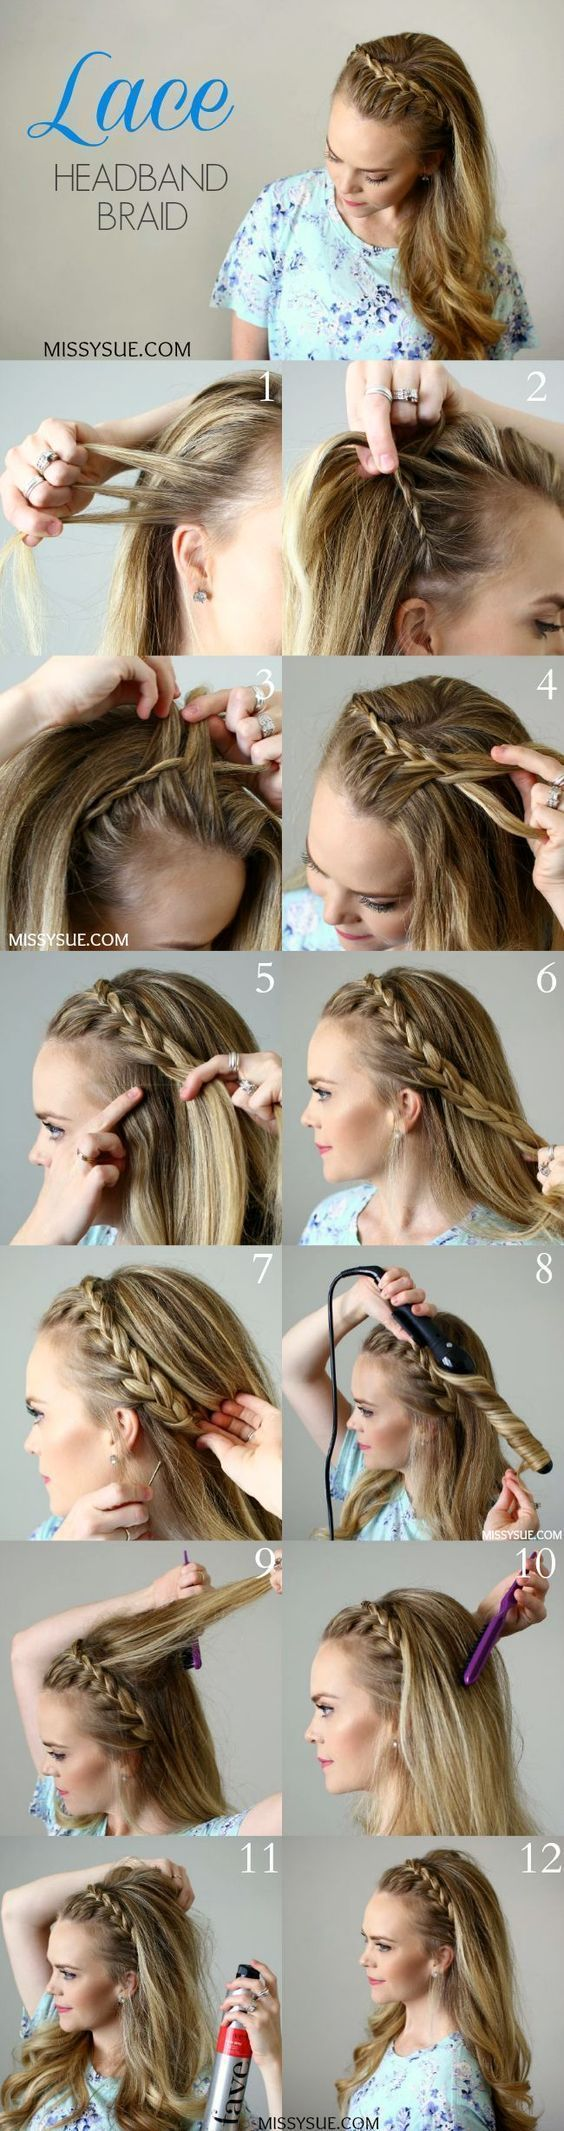 ways to style your hair for every summer occasion formal